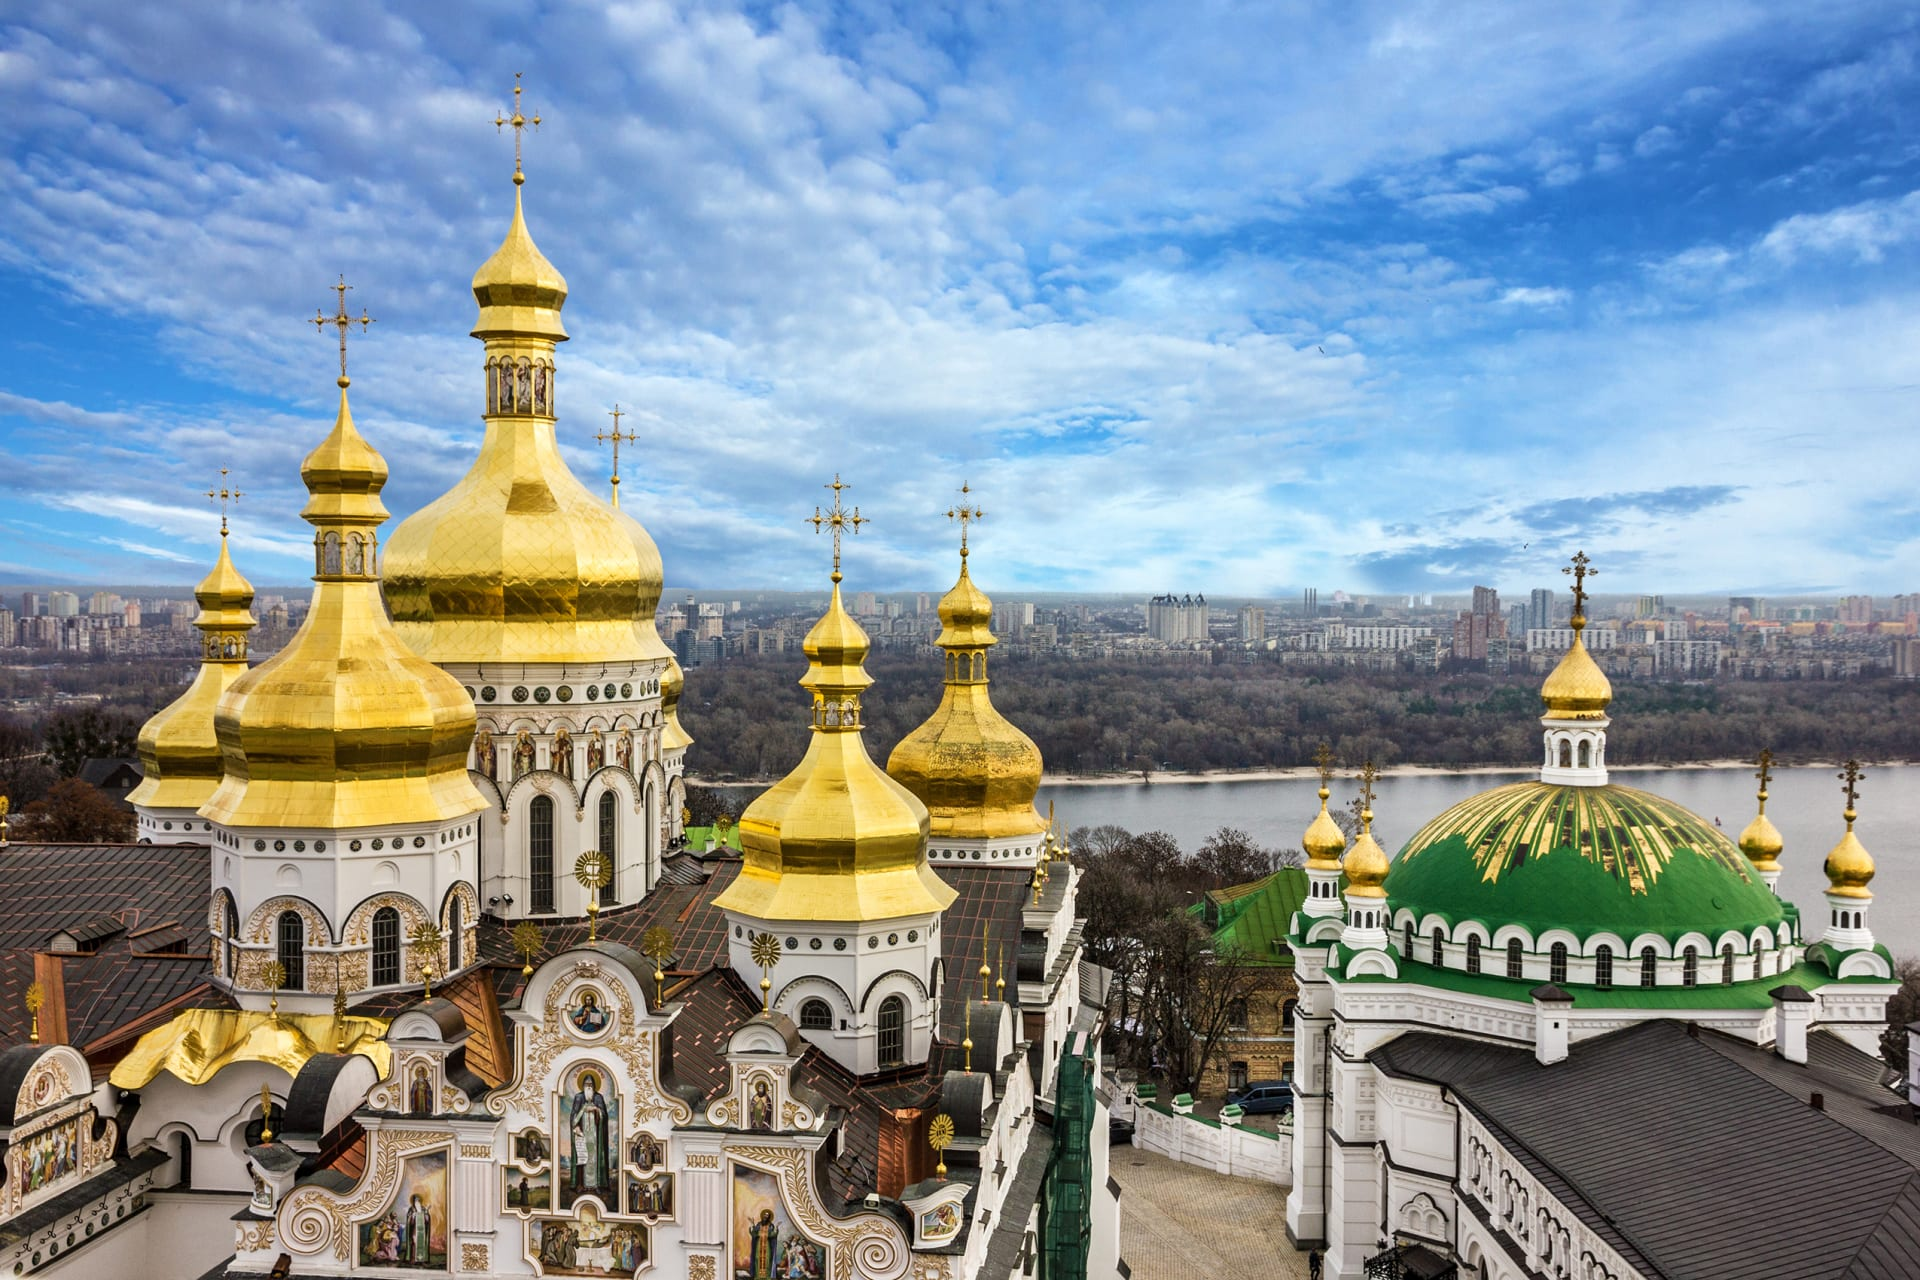 Kyiv - Special Edition: Celebration of Orthodox Easter in Kyiv-Pechersk Lavra.